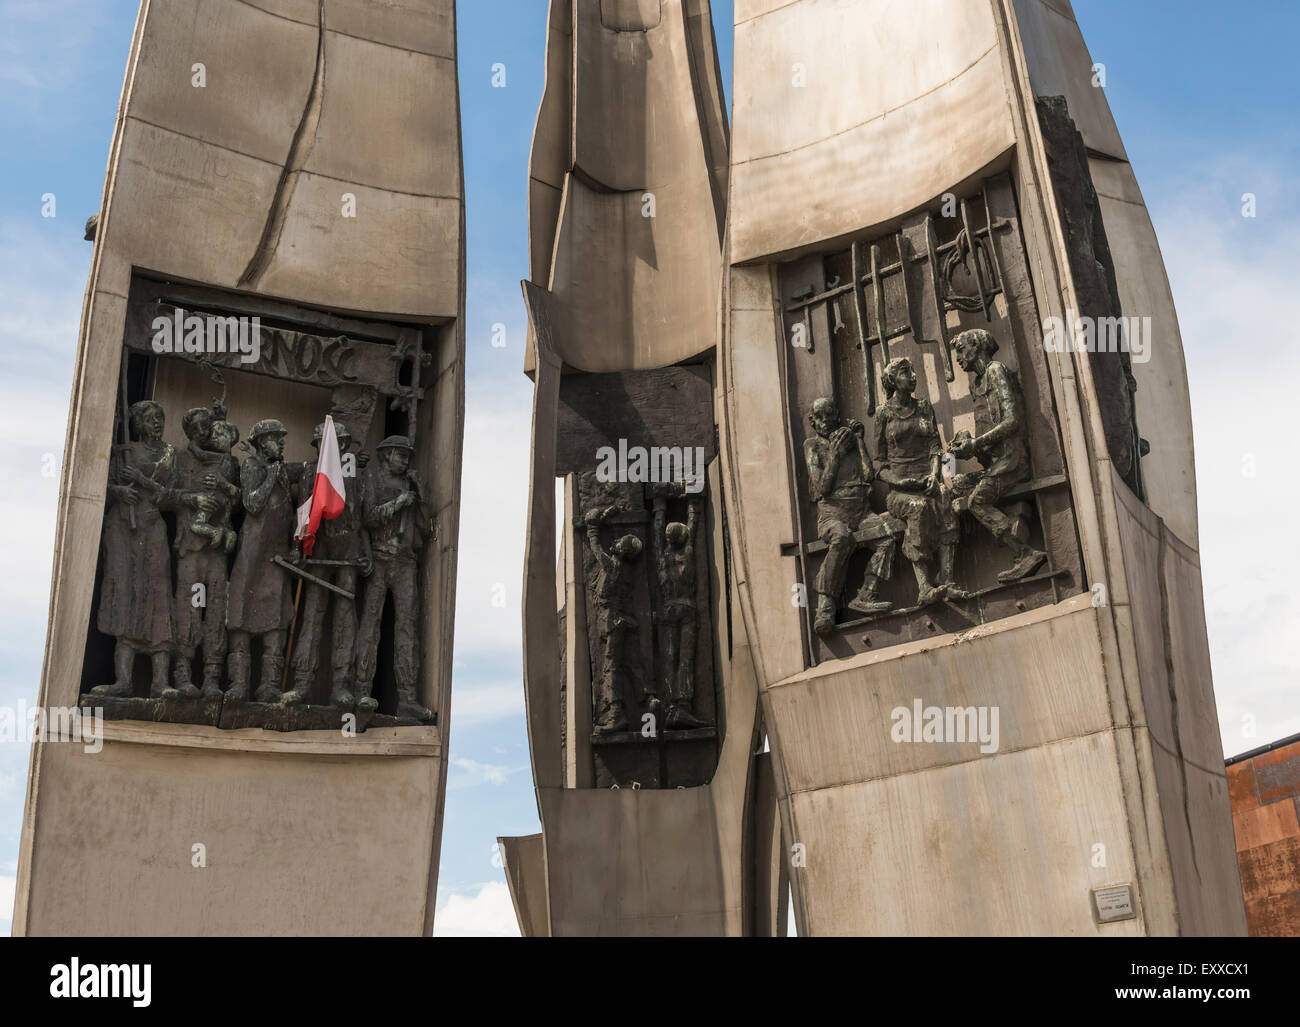 Detail in the Monument of the Fallen Shipyard Workers 1970 in Gdansk, Poland, Europe - Stock Image